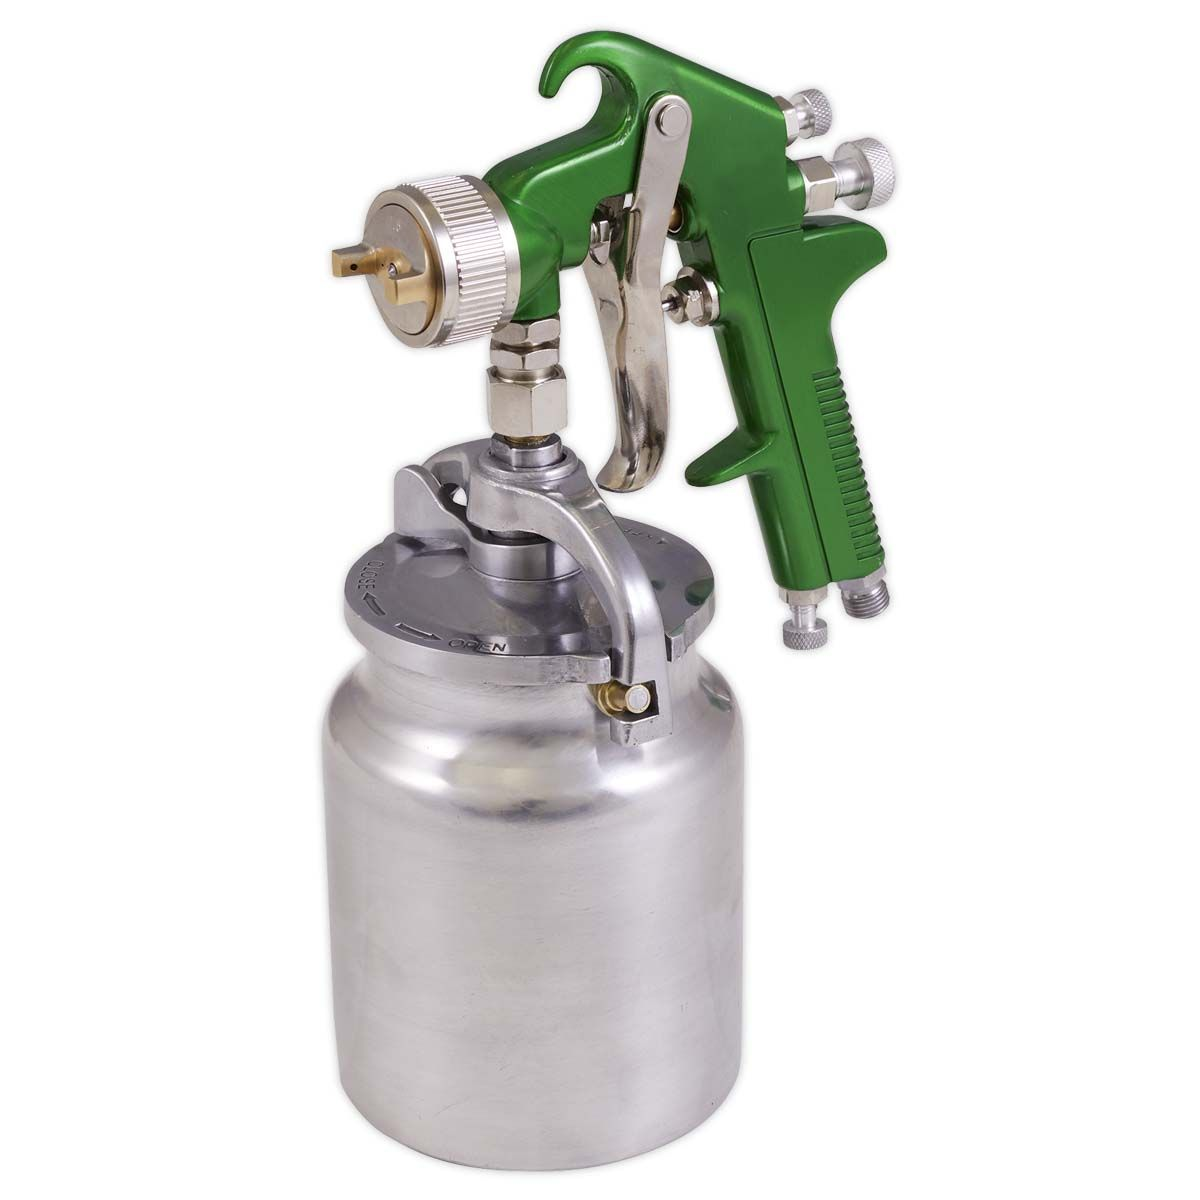 Sealey Suction Feed Spray Gun 2.5mm Set-Up